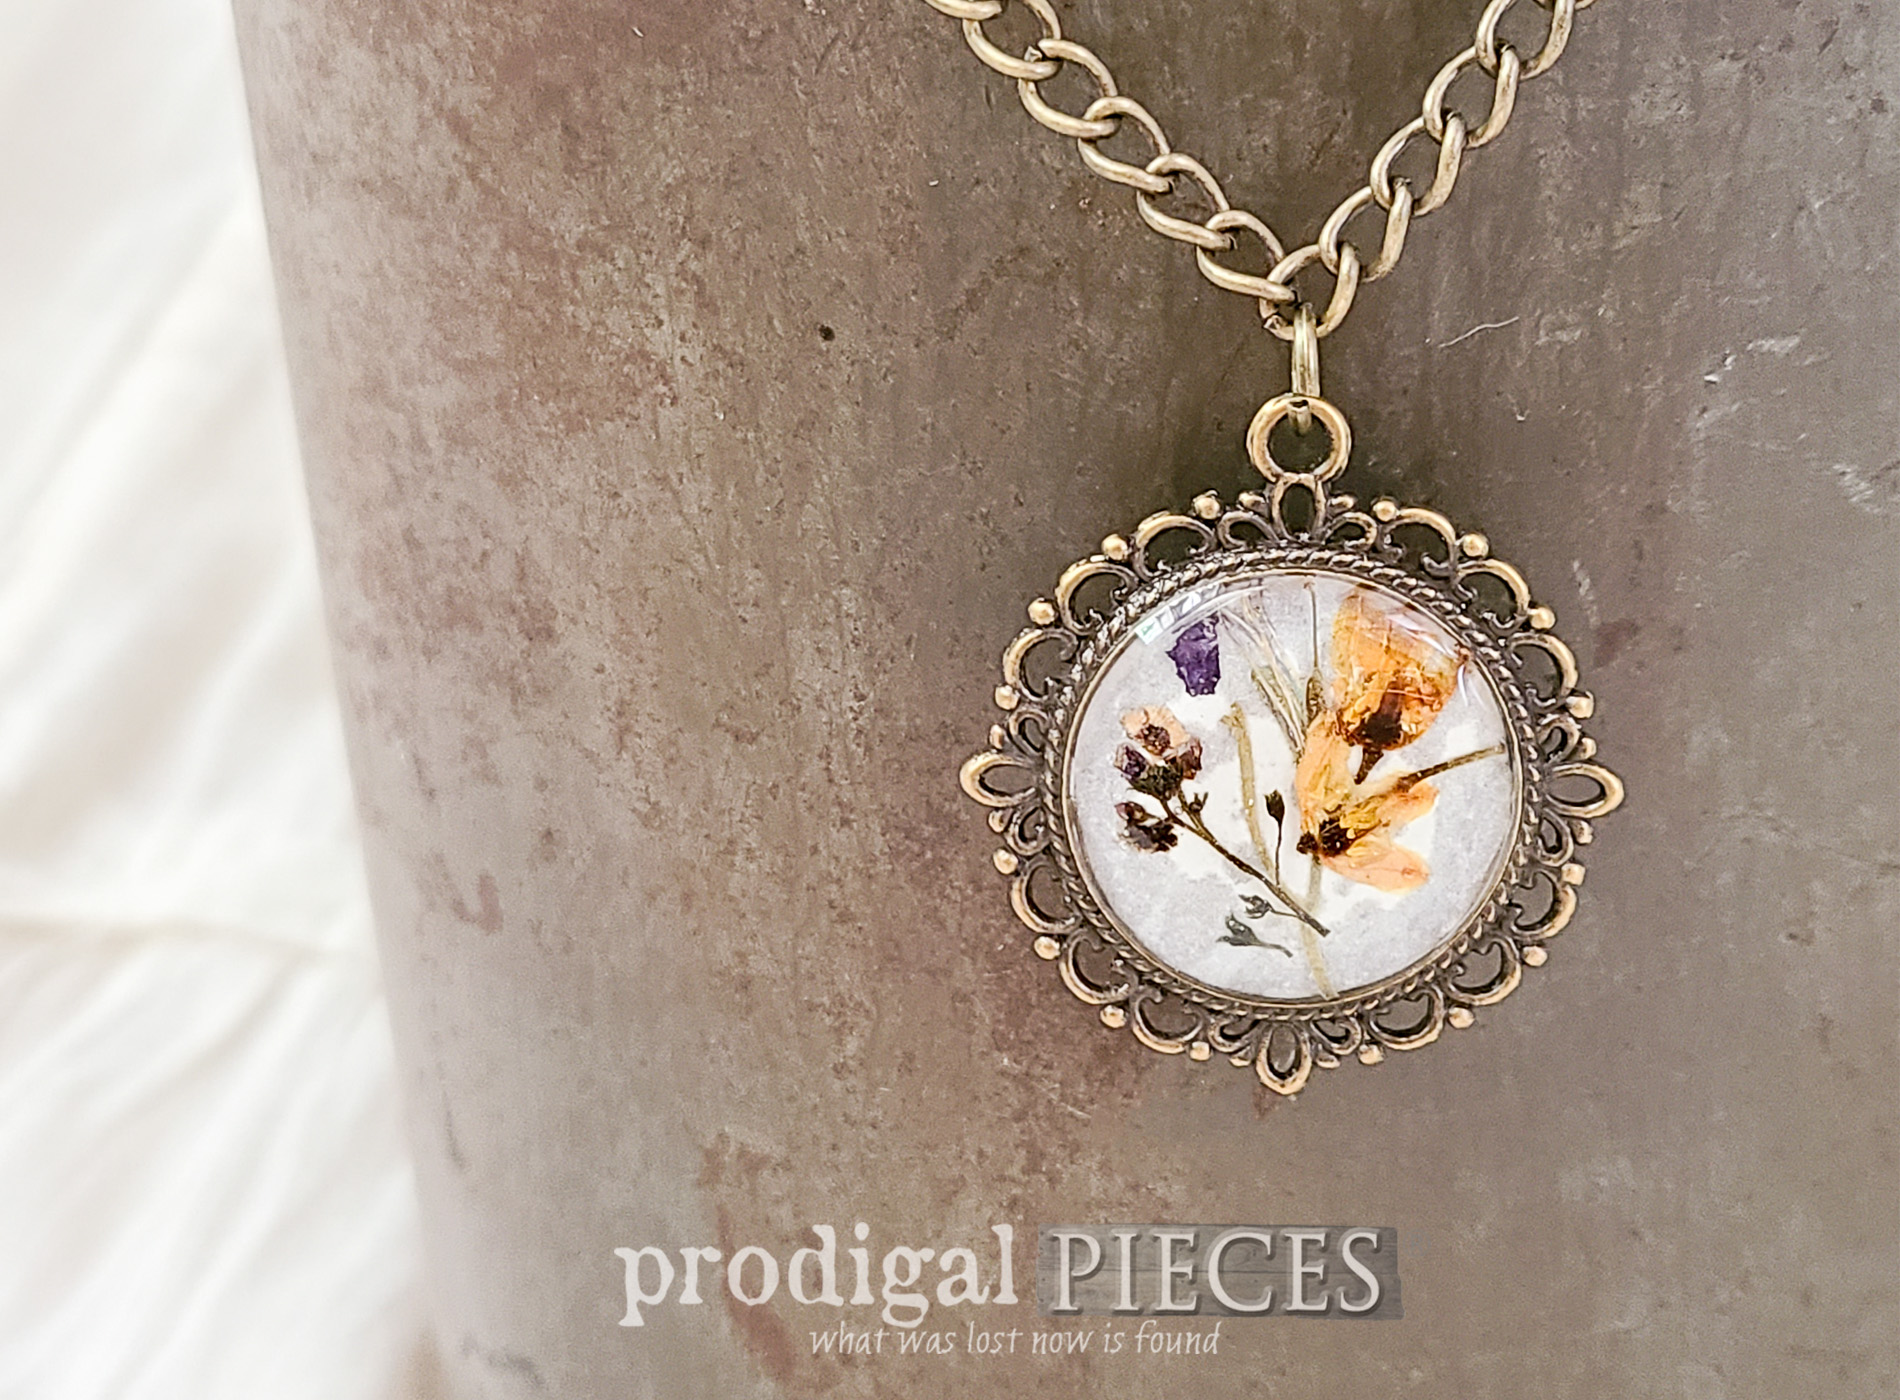 Featured DIY Resin Necklace Pendant Necklace Tutorial by Larissa of Prodigal Pieces | prodigalpieces.com #prodigalpieces #diy #crafts #jewelry